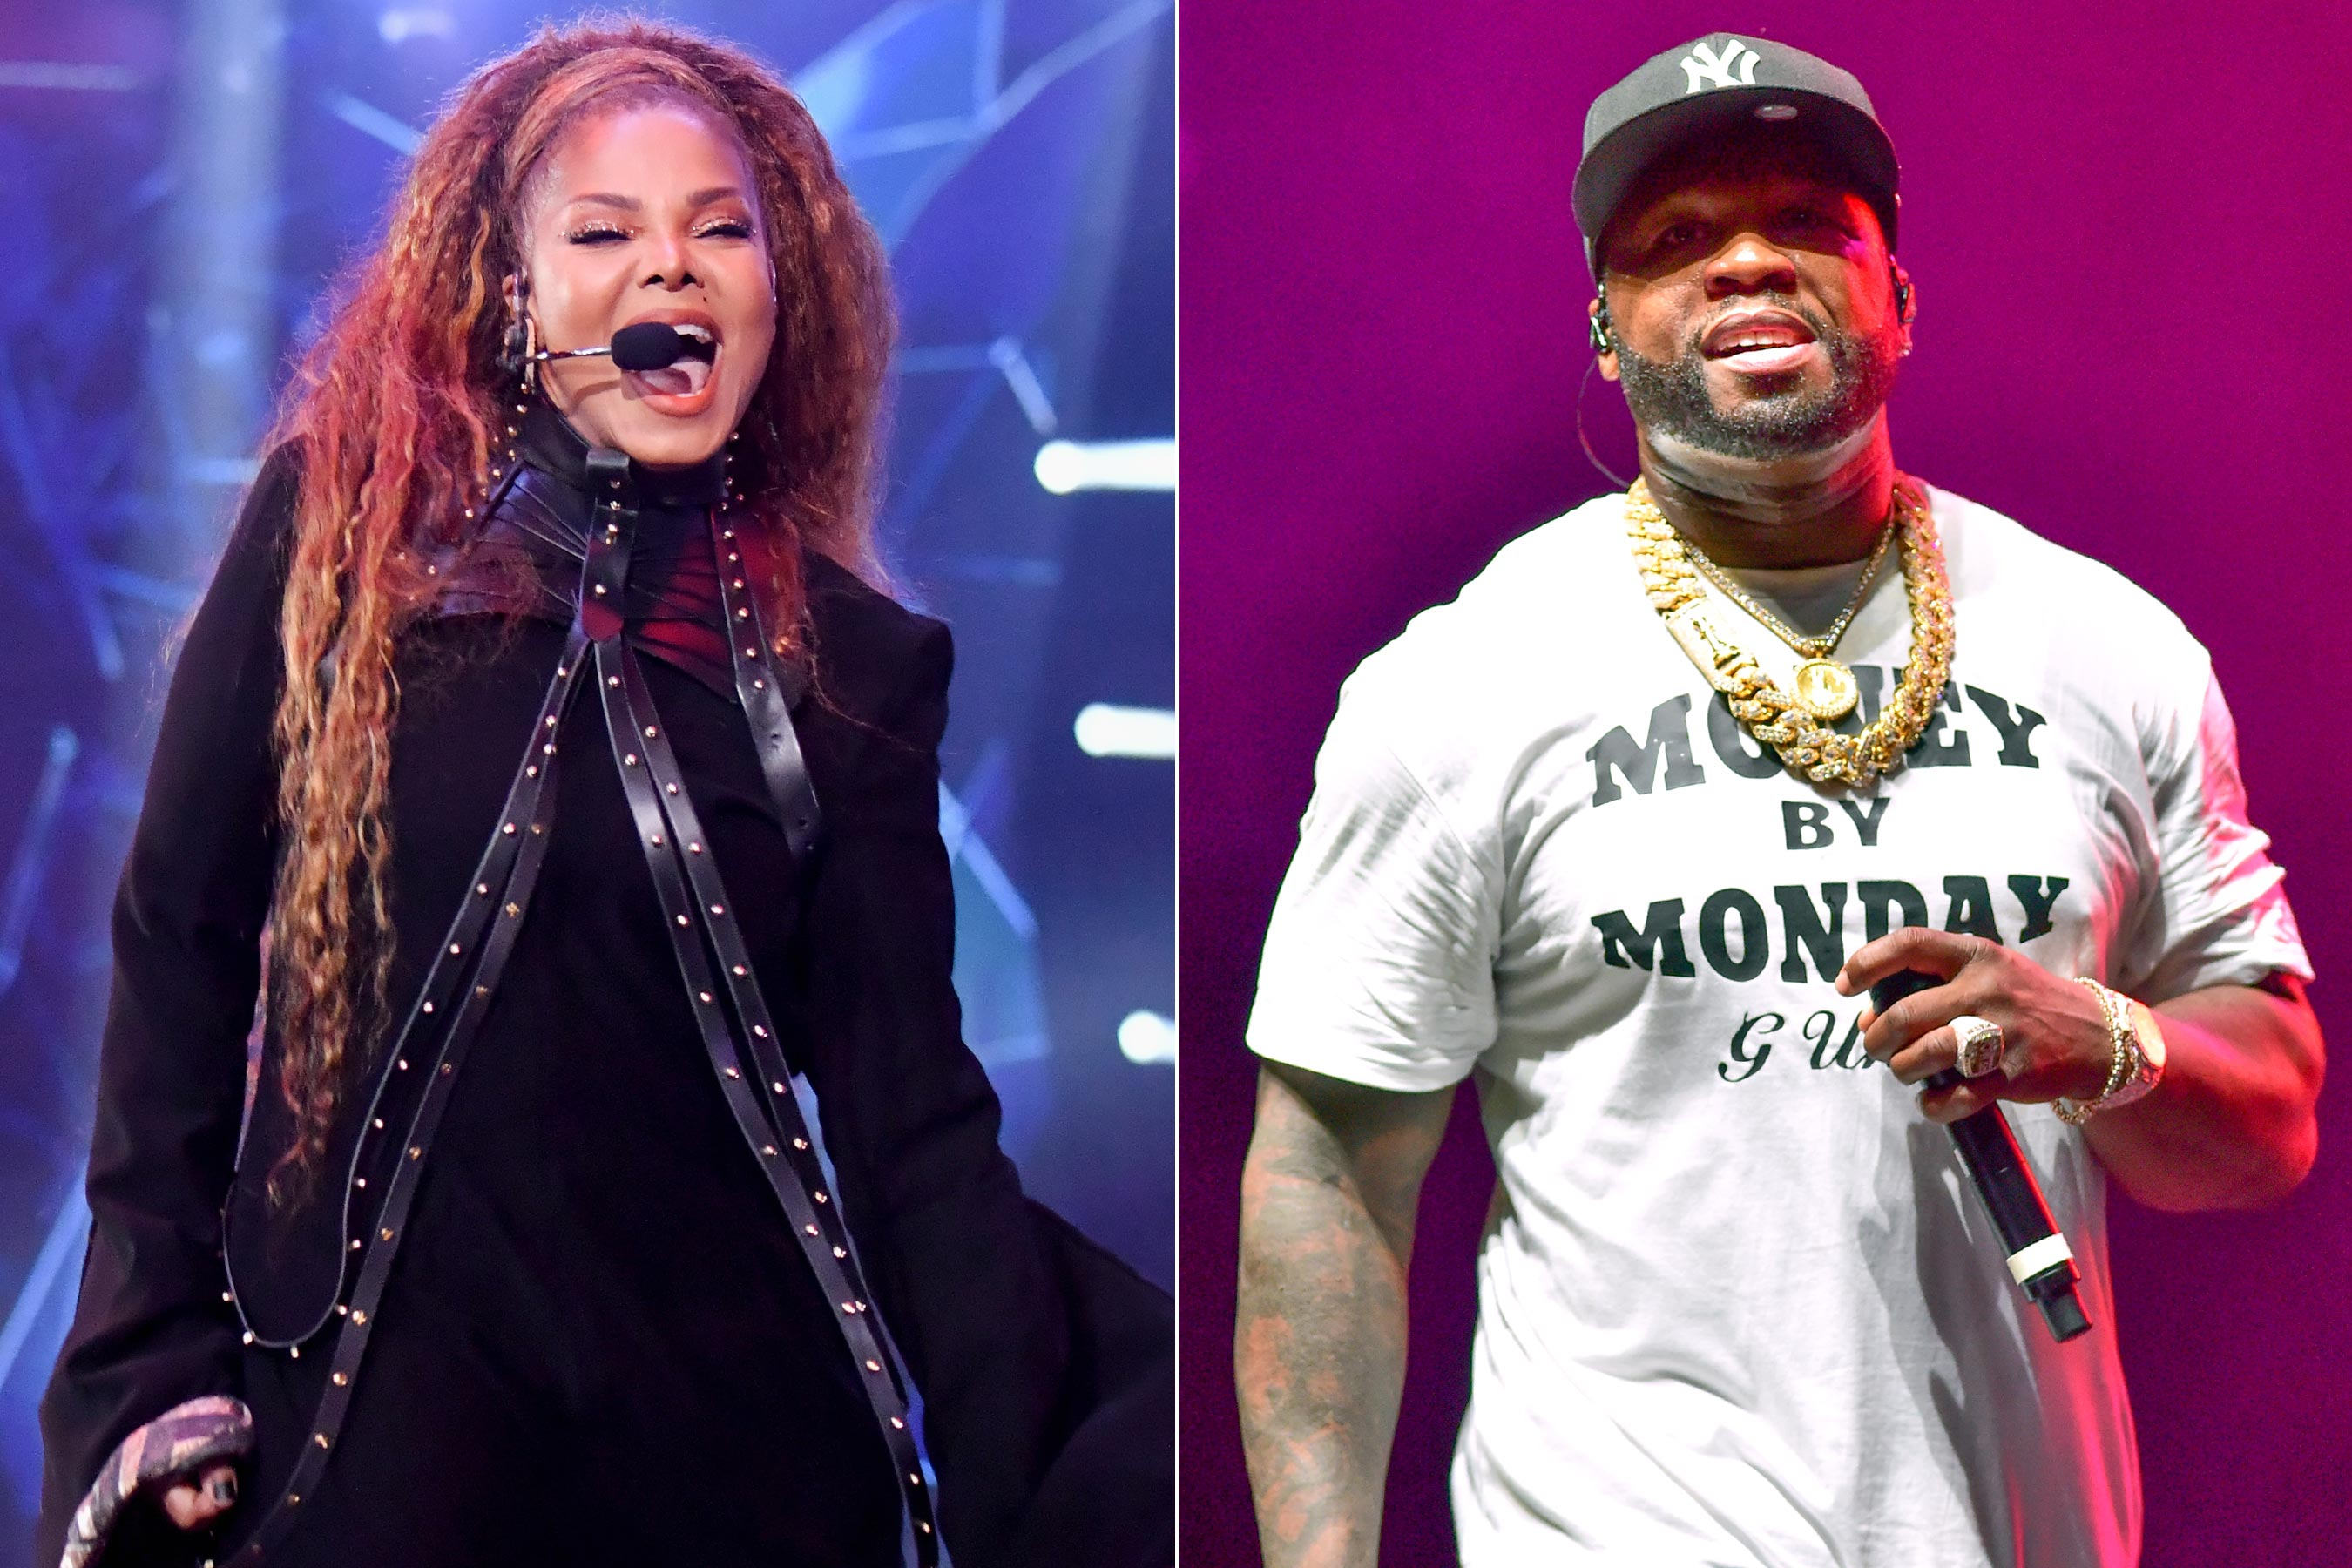 Janet Jackson and 50 Cent to perform at Saudi Arabia concert boycotted by activists